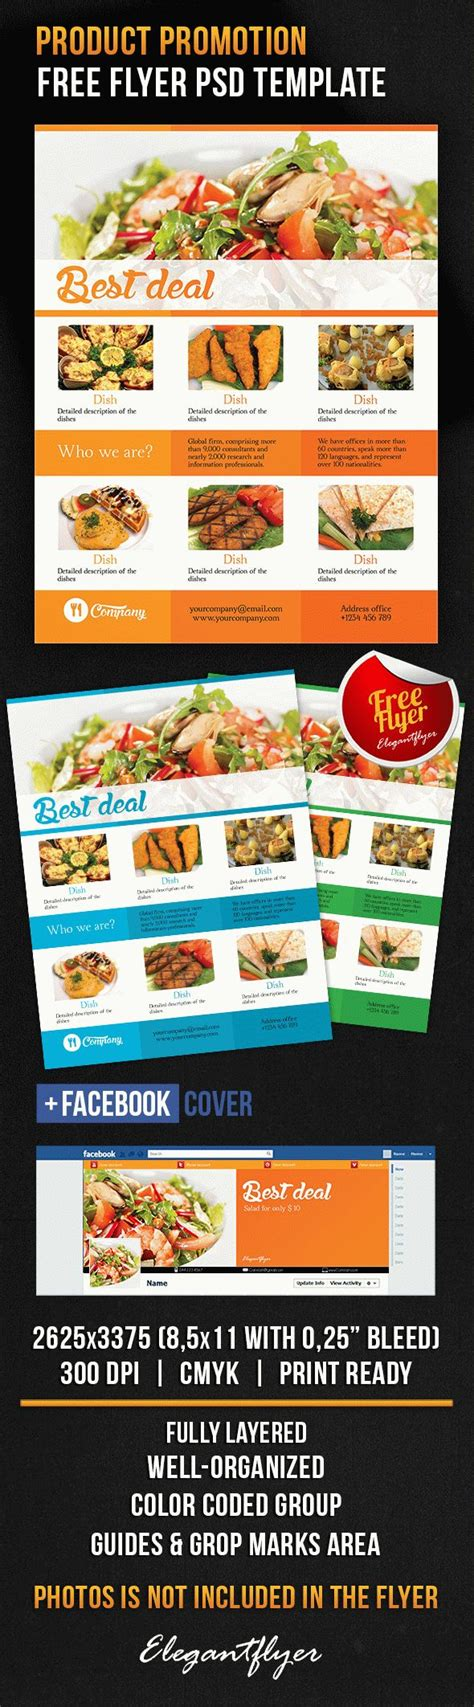 Product Flyer Template Psd